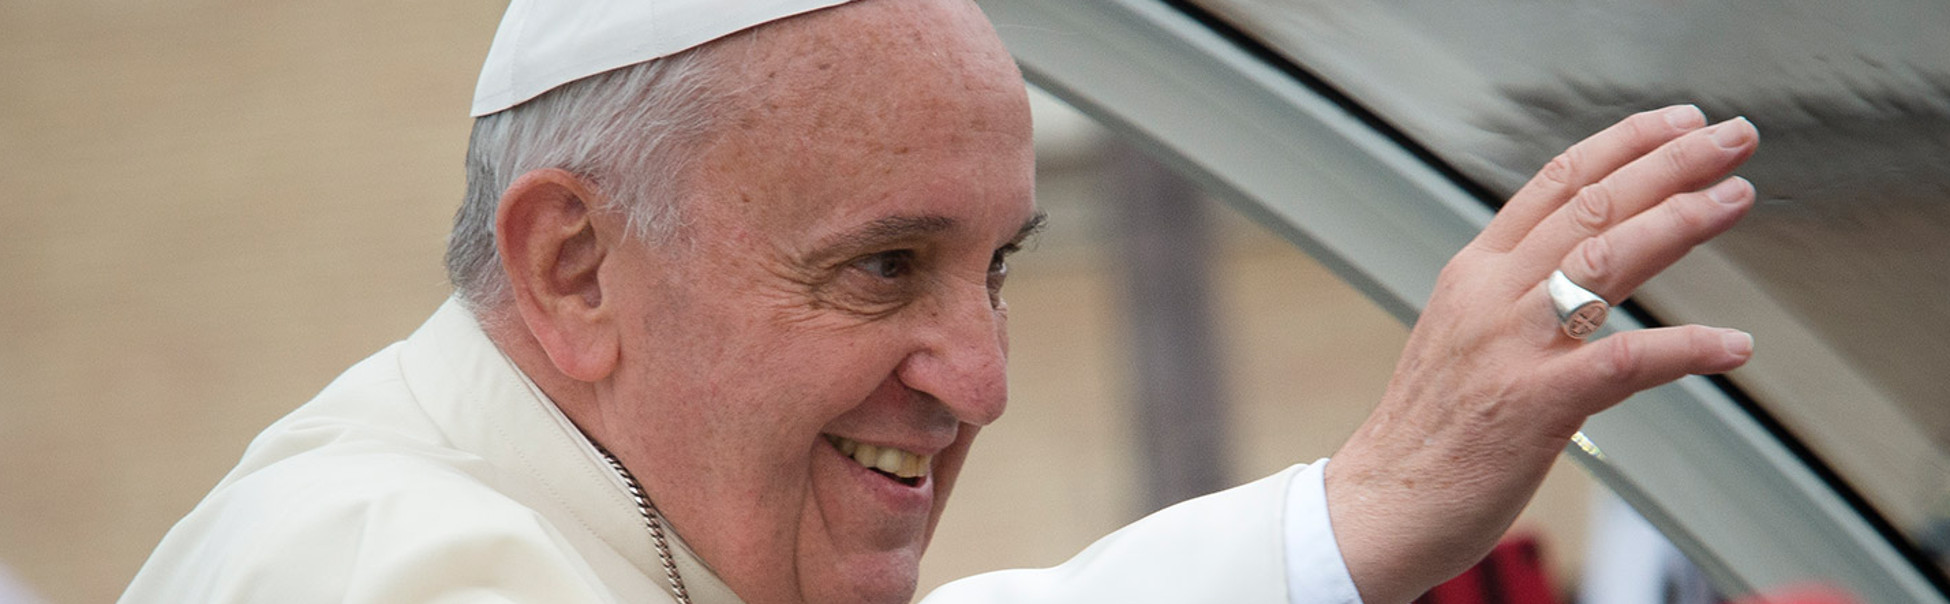 Pope Francis in his collaborative documentary with Wim Wenders